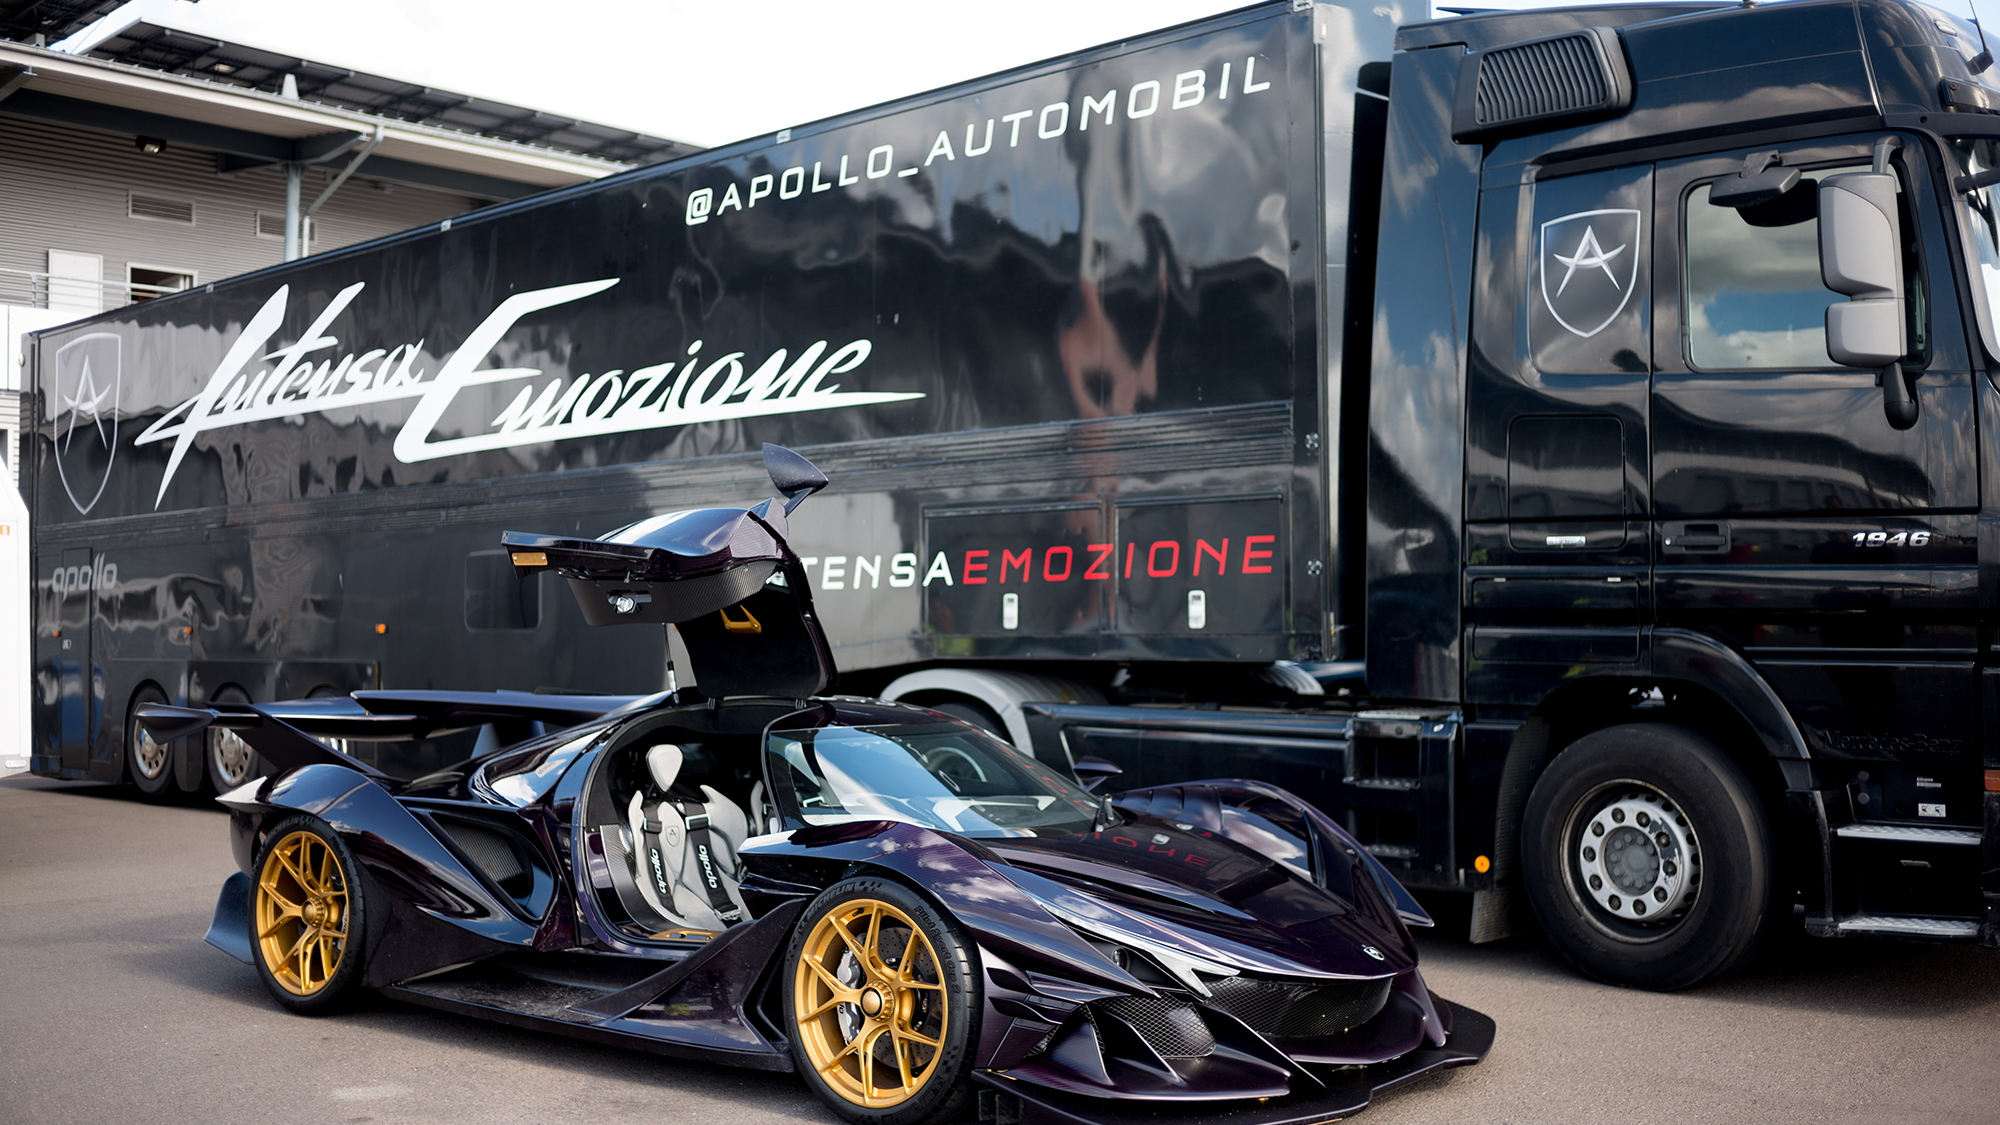 The Apollo Intensa Emozione